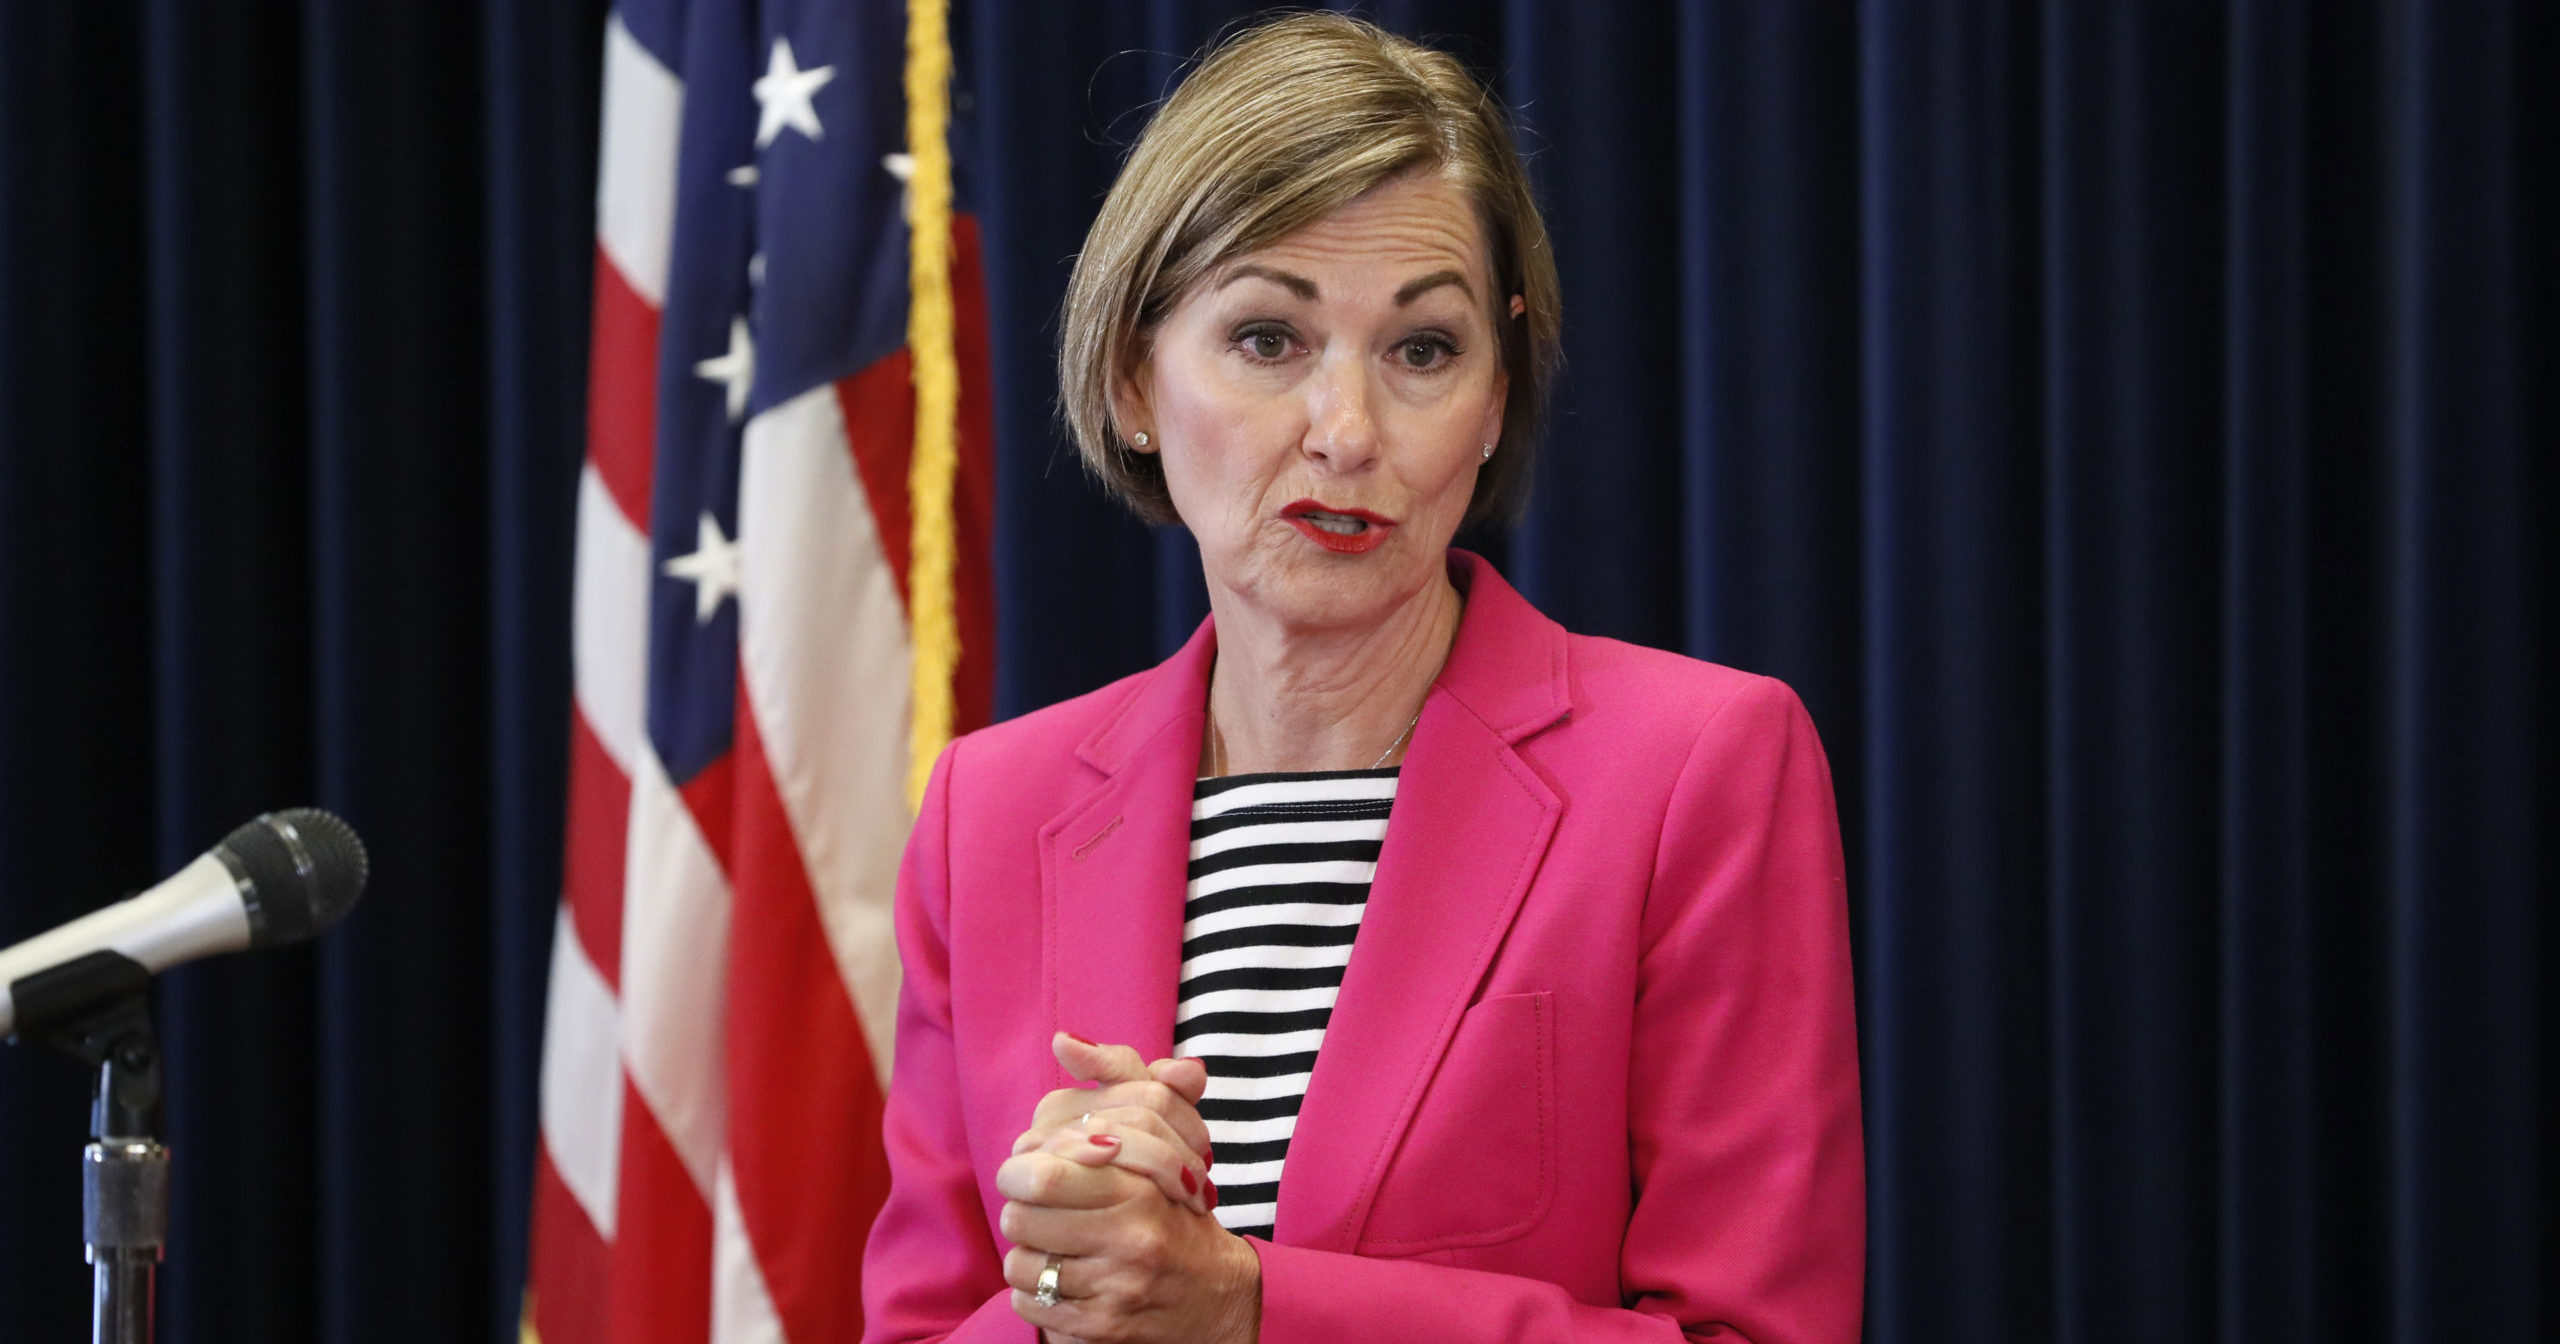 This June 18, 2020, file photo shows Iowa Gov. Kim Reynolds speaking during a news conference at the Statehouse in Des Moines, Iowa.